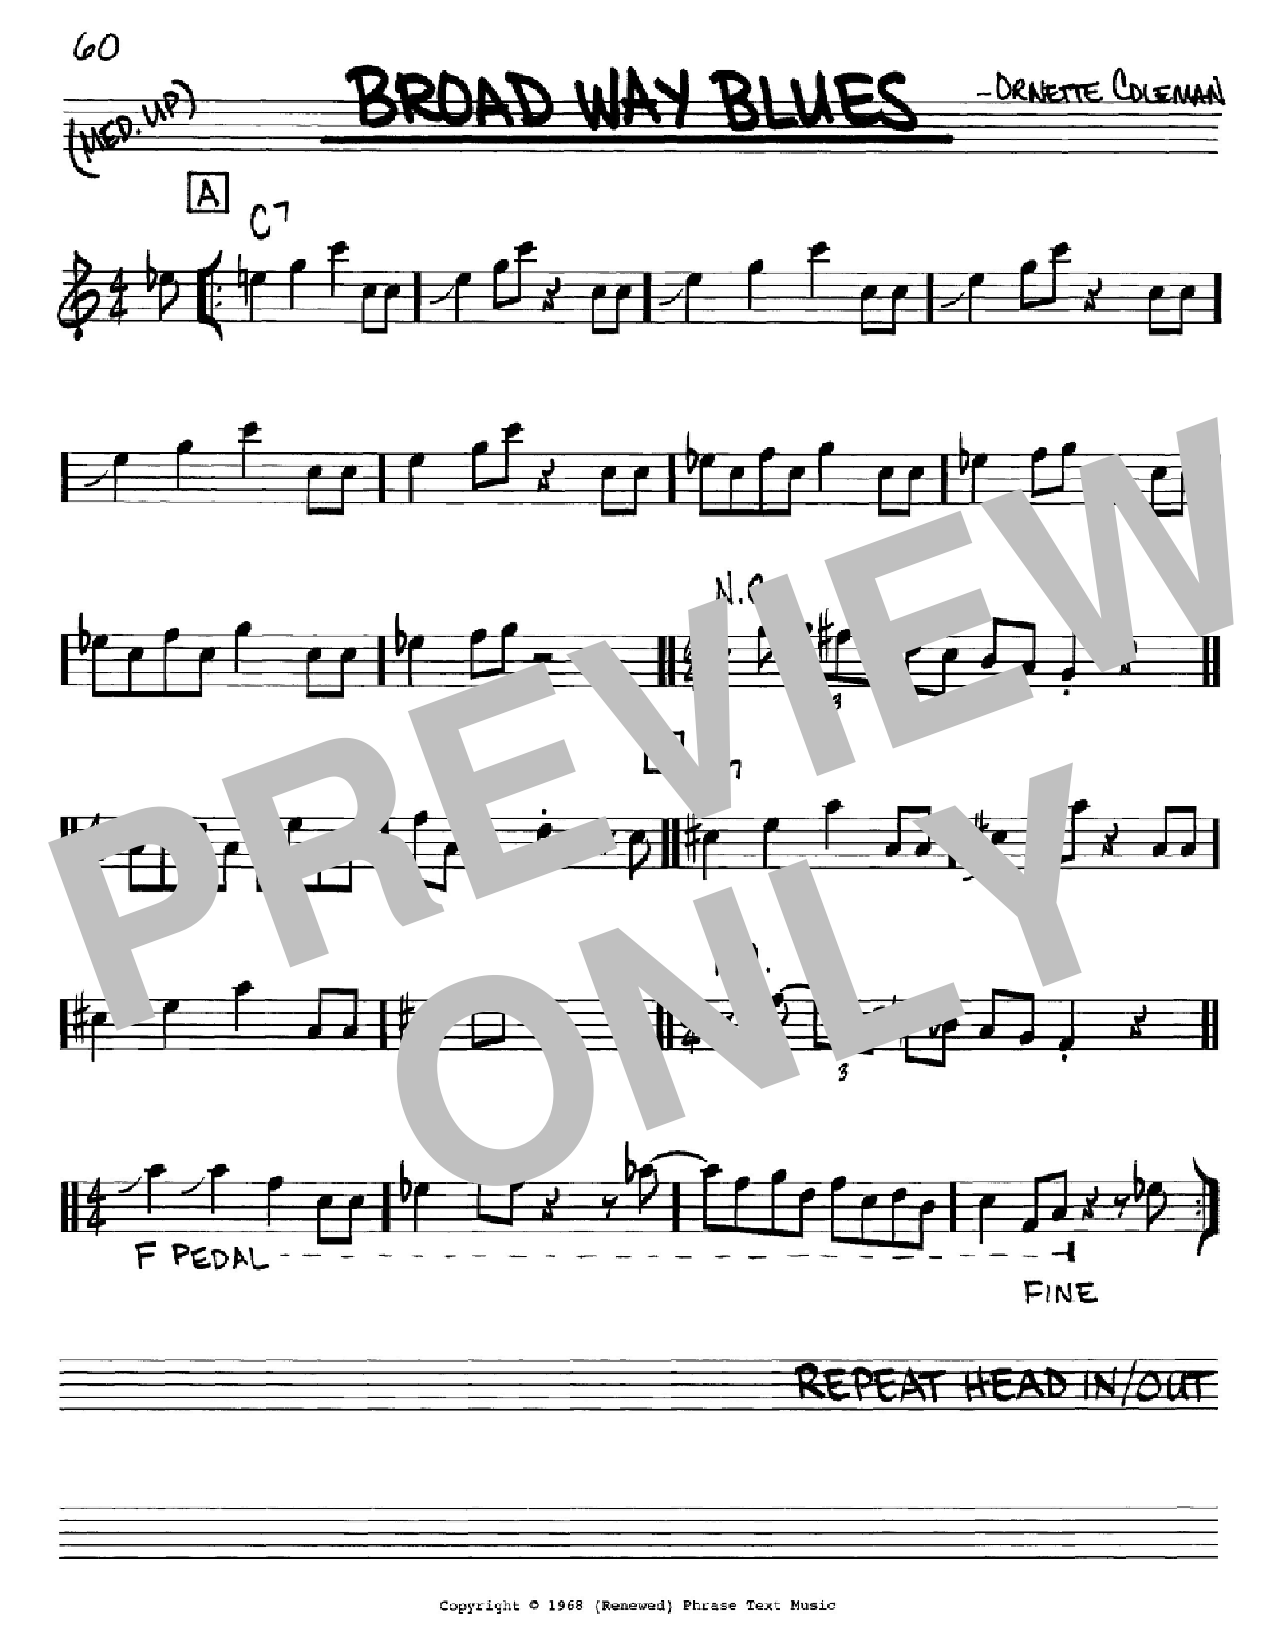 Broad Way Blues Sheet Music